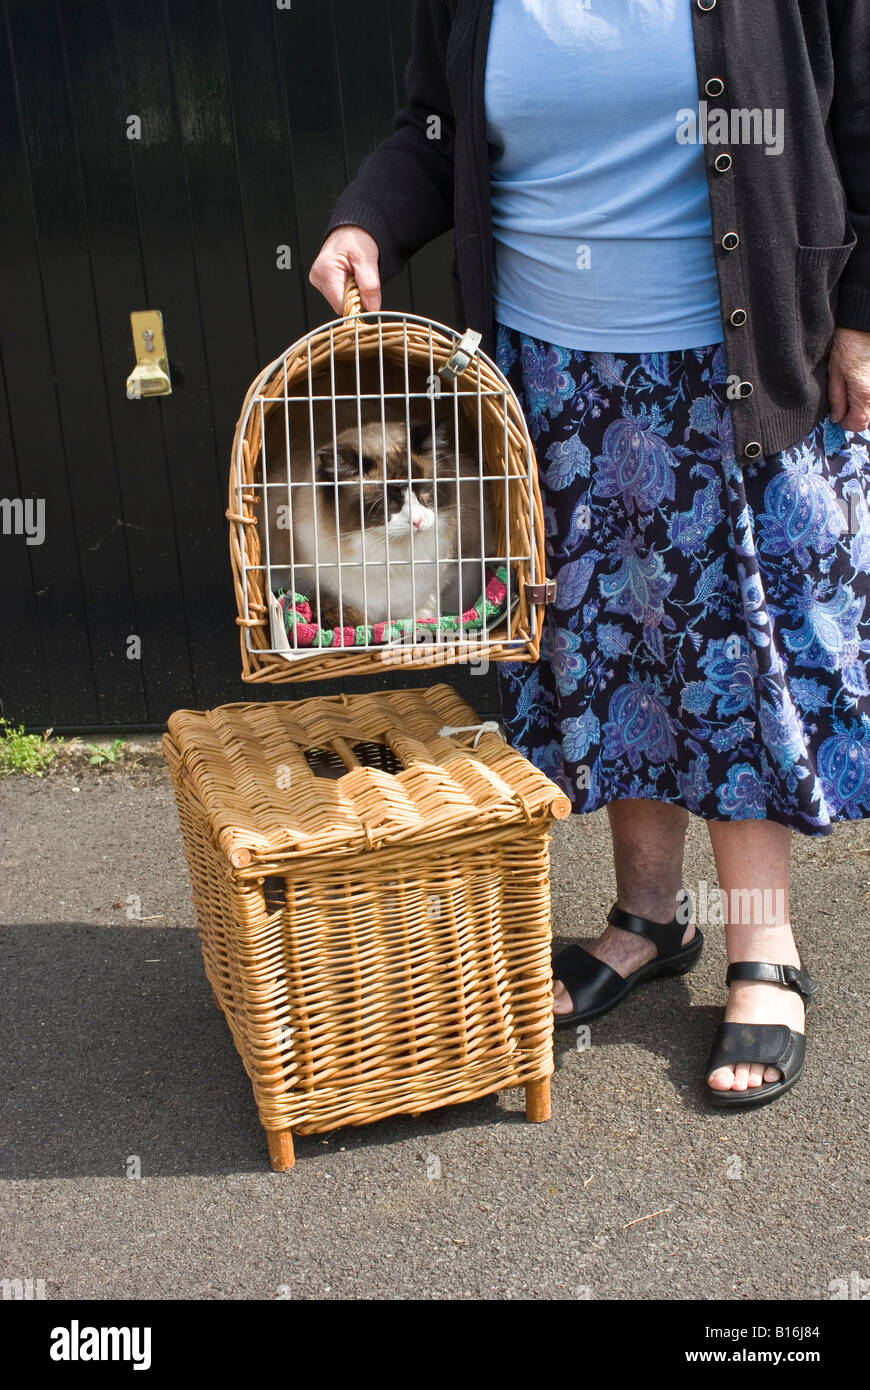 Ragdoll domestic cats in baskets ready for travel - Stock Image